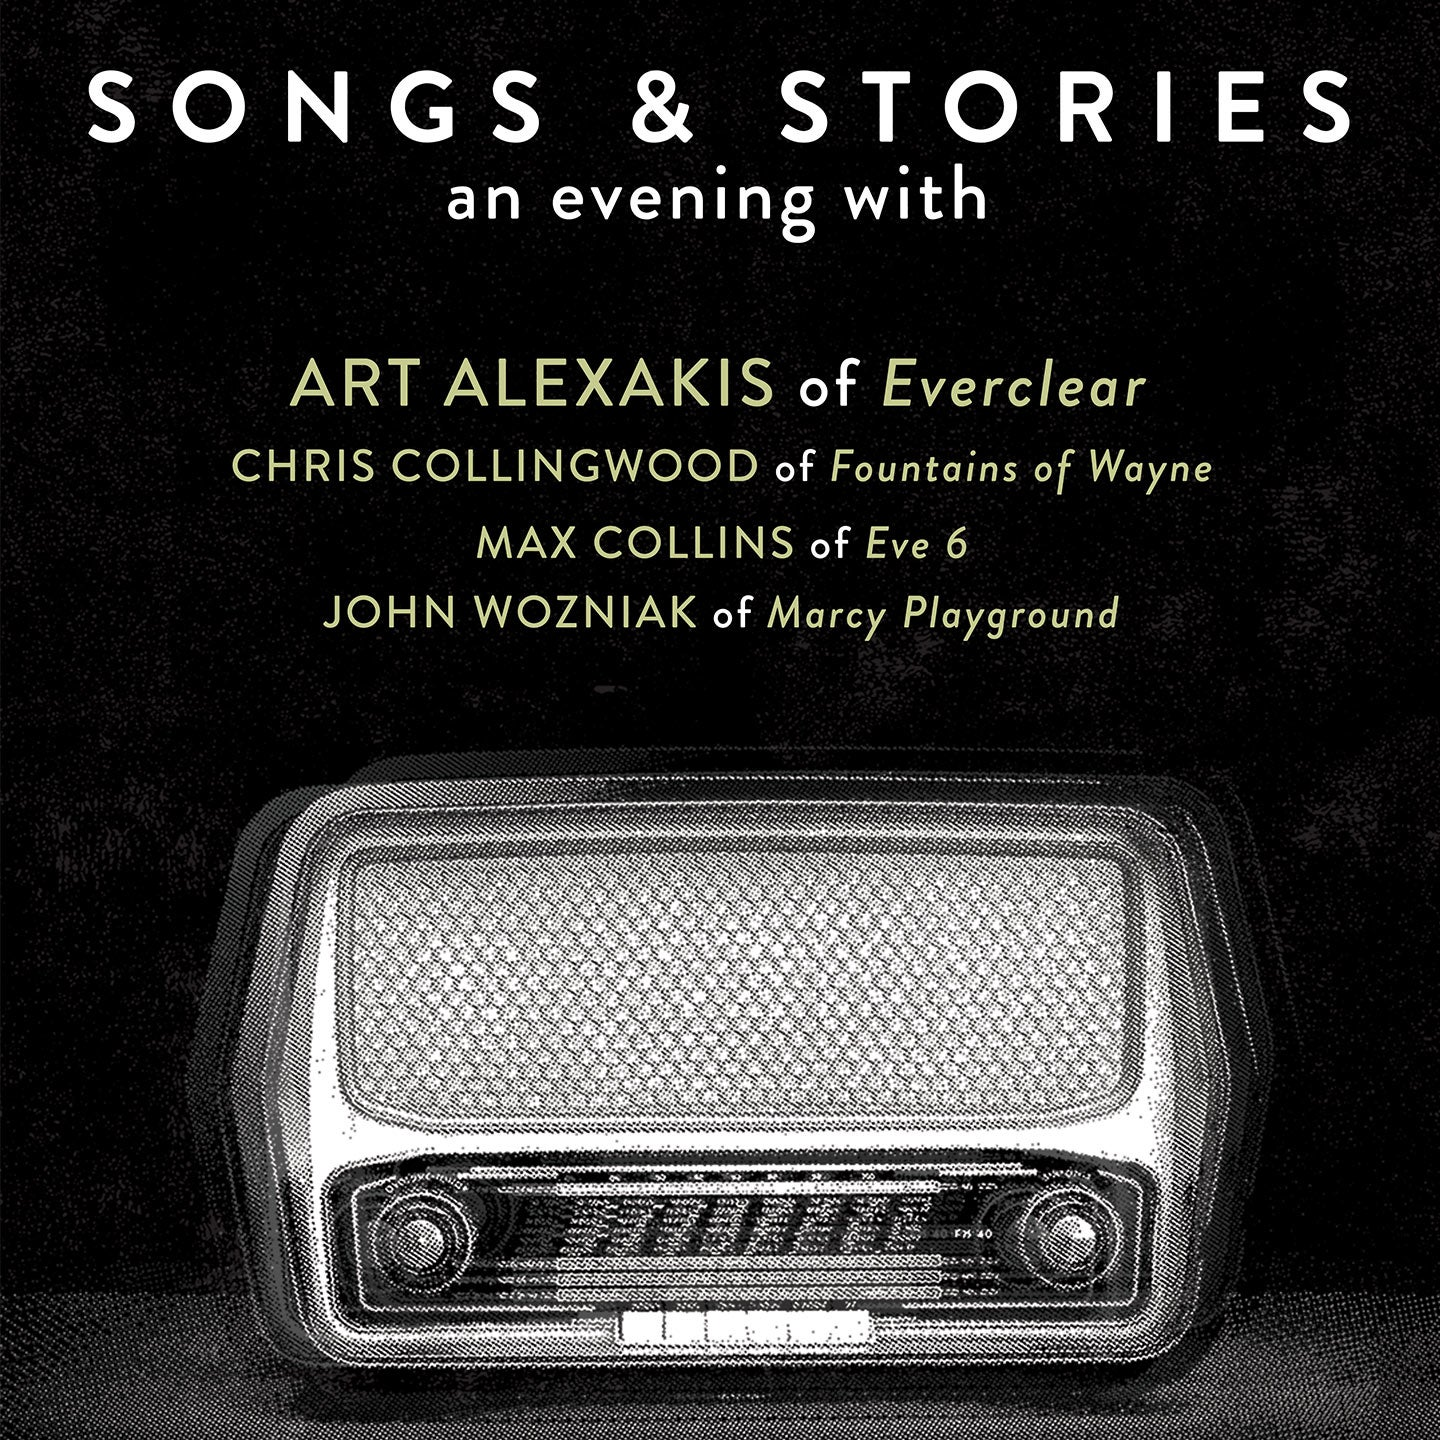 Songs and Stories: An Evening with Art Alexakis and More